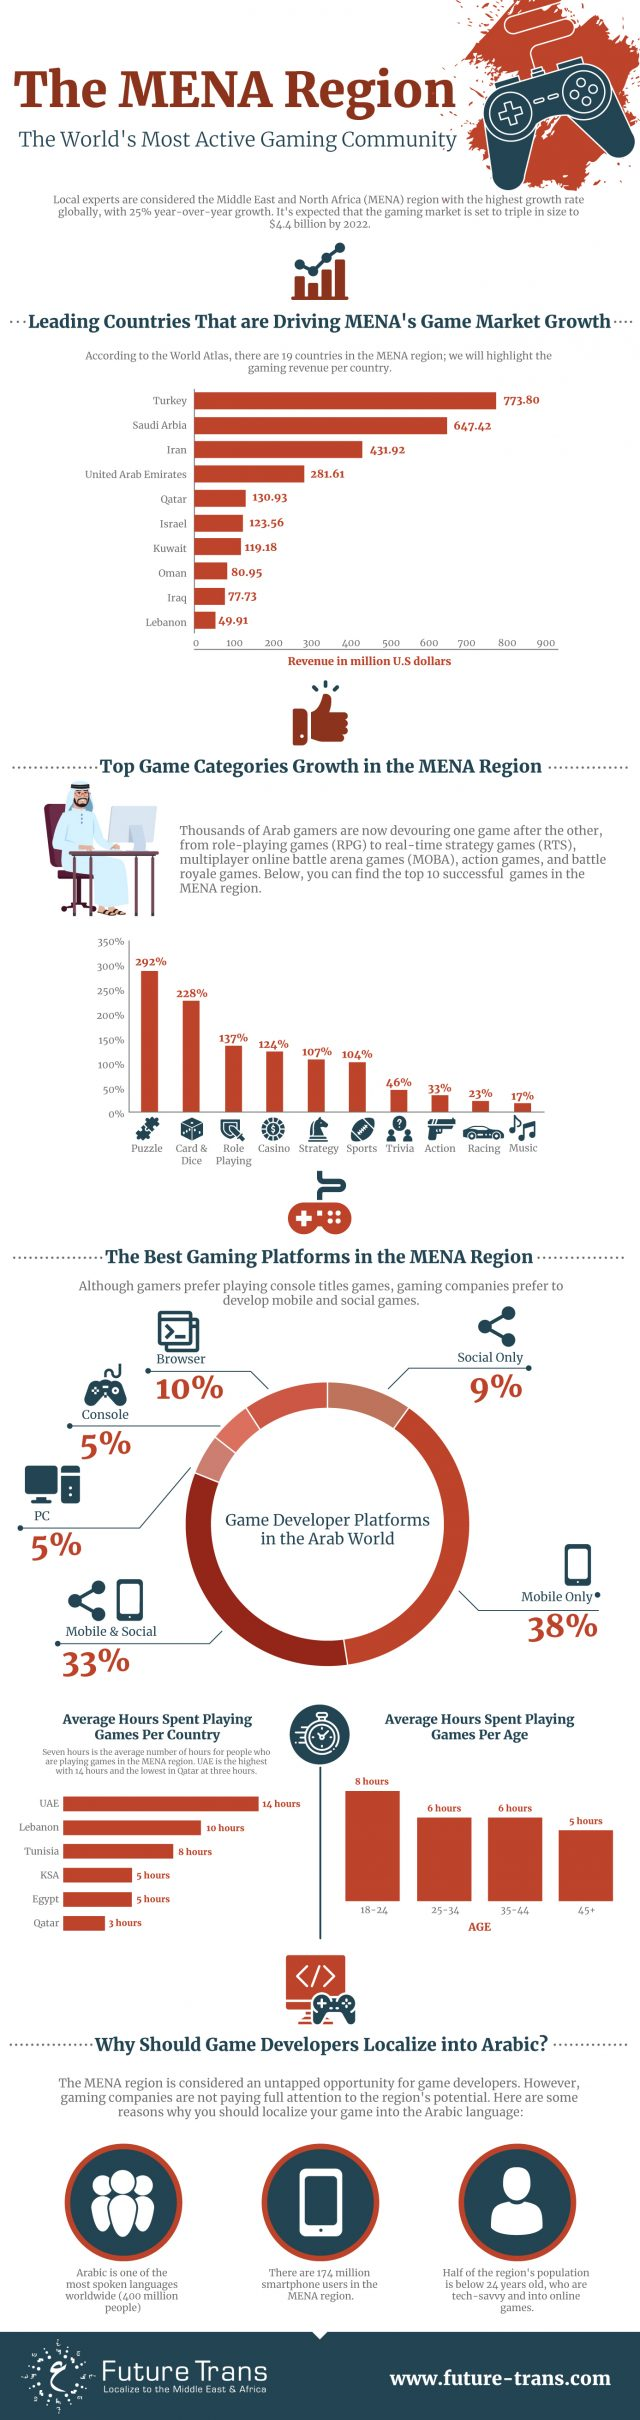 The MENA Region - The World's Most Active Gaming Community